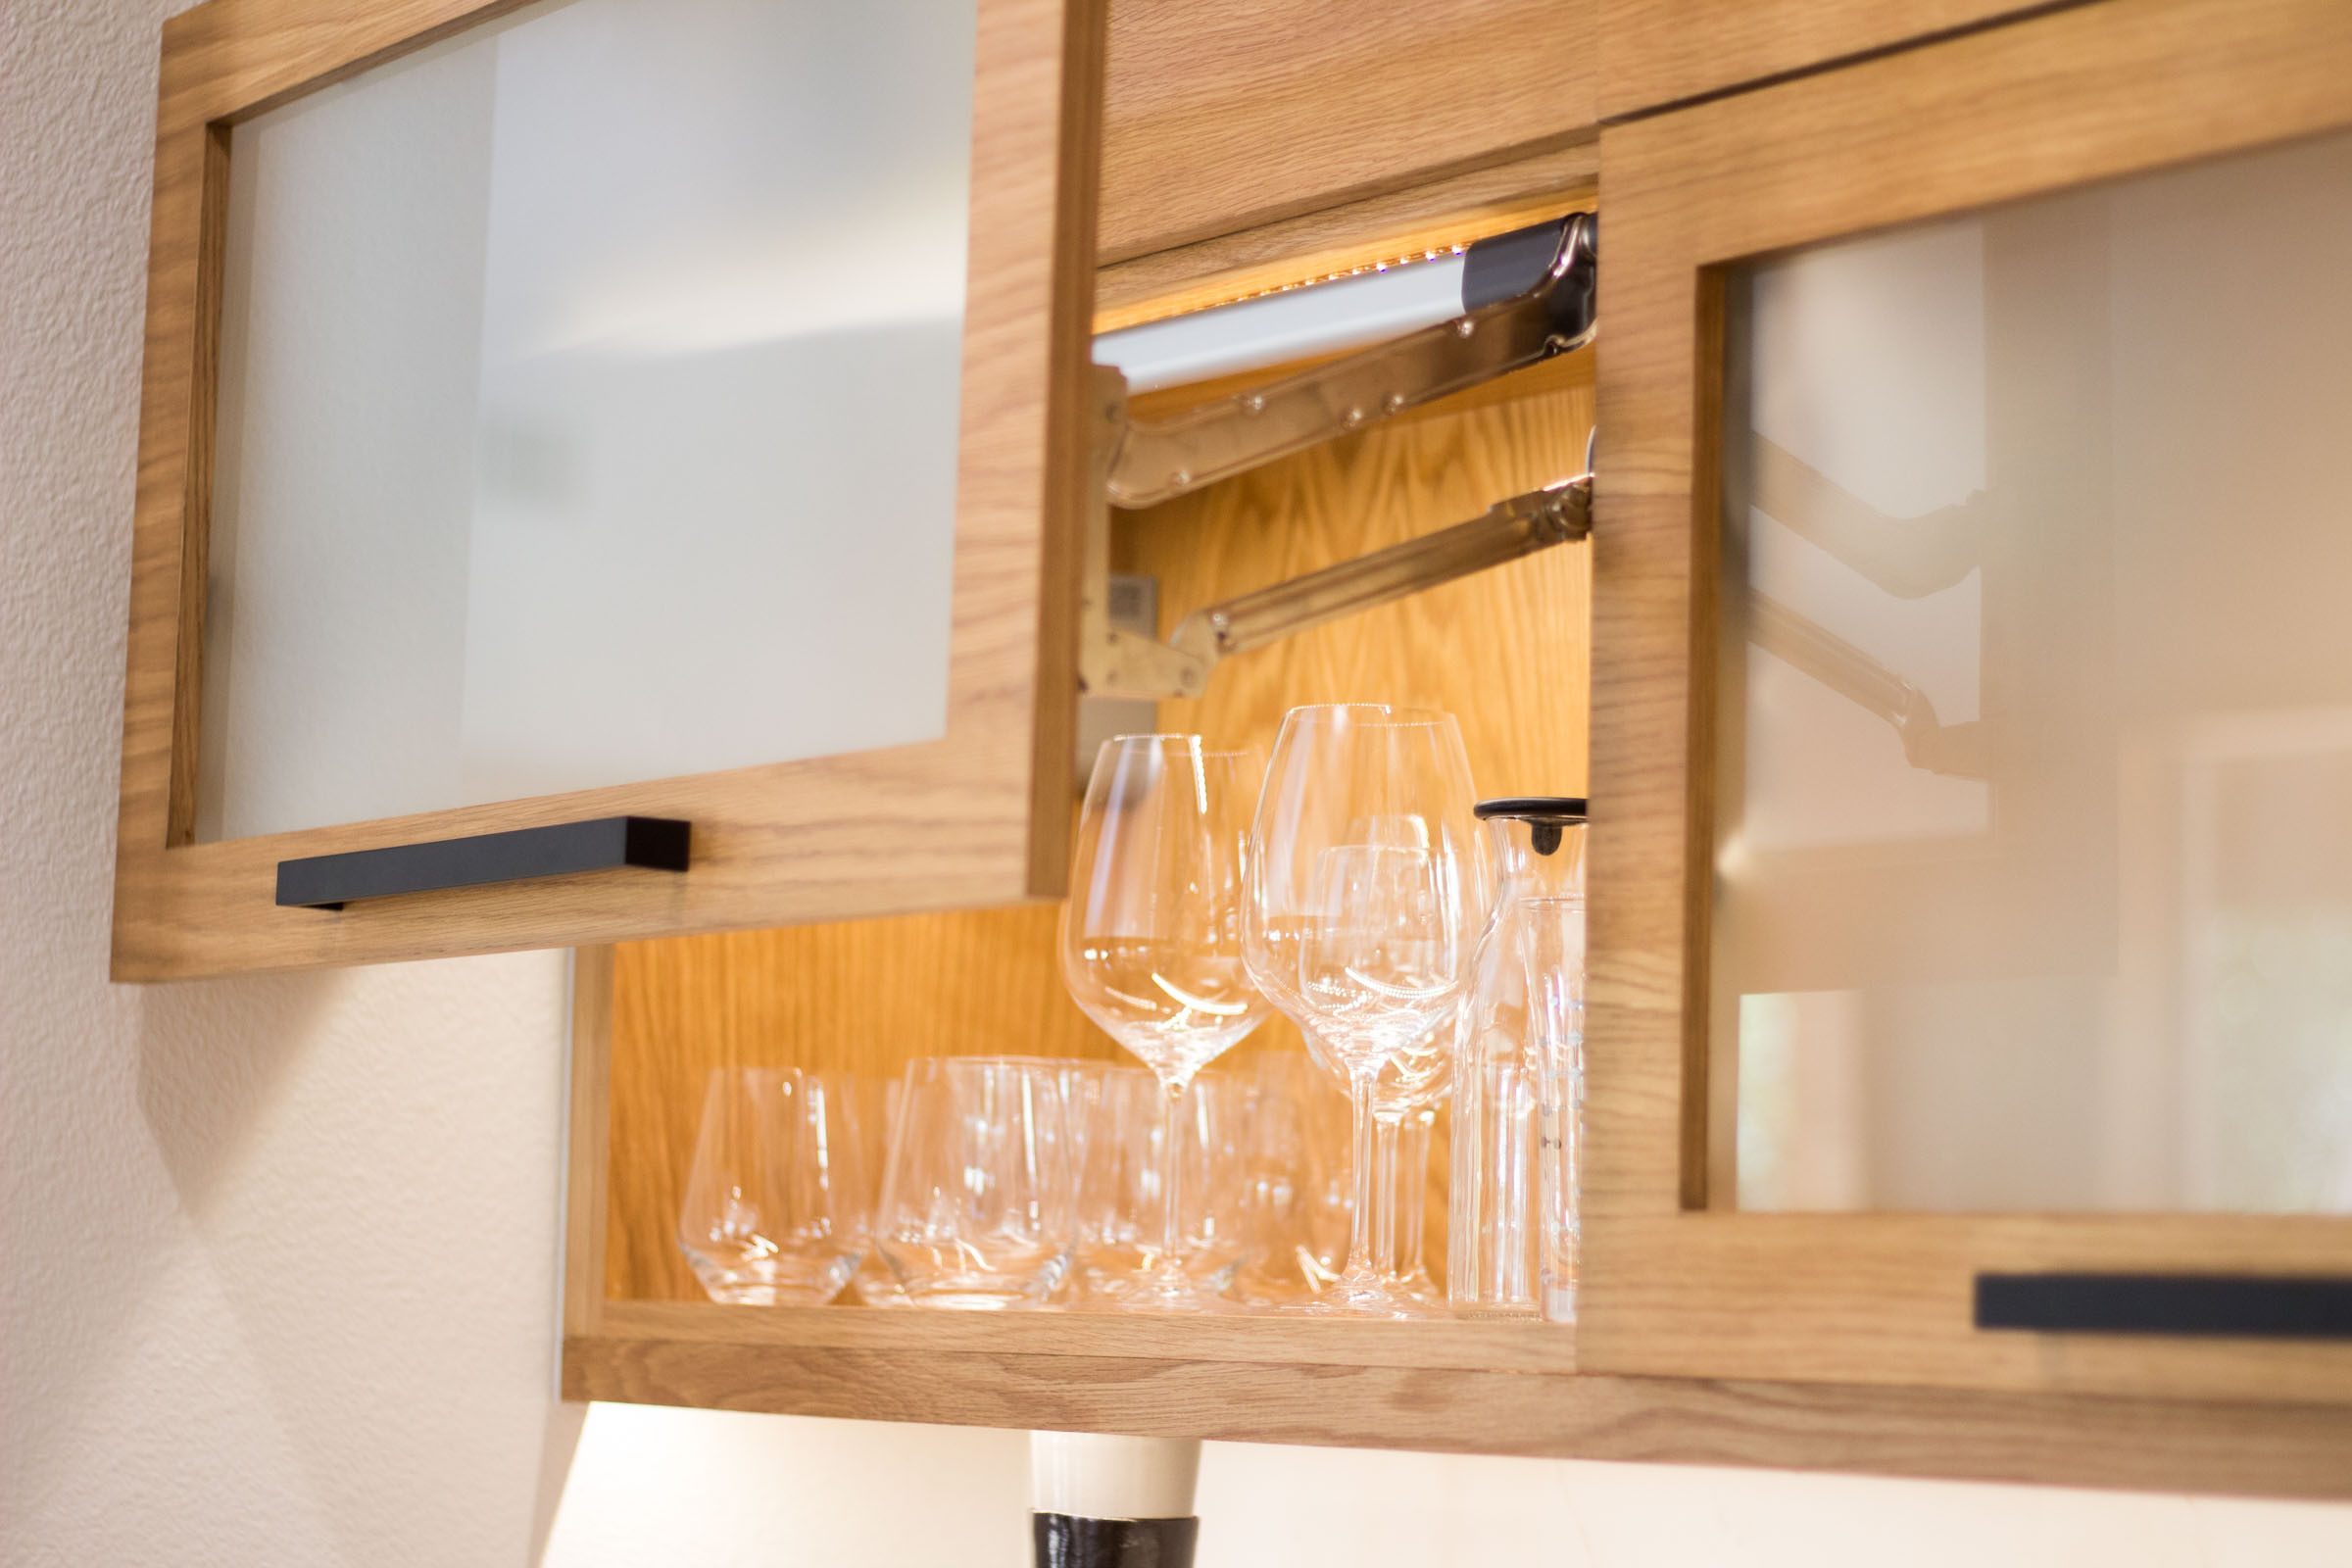 Wine glasses, frosted glass cabinet, vertical lift cabinet door, blonde wood